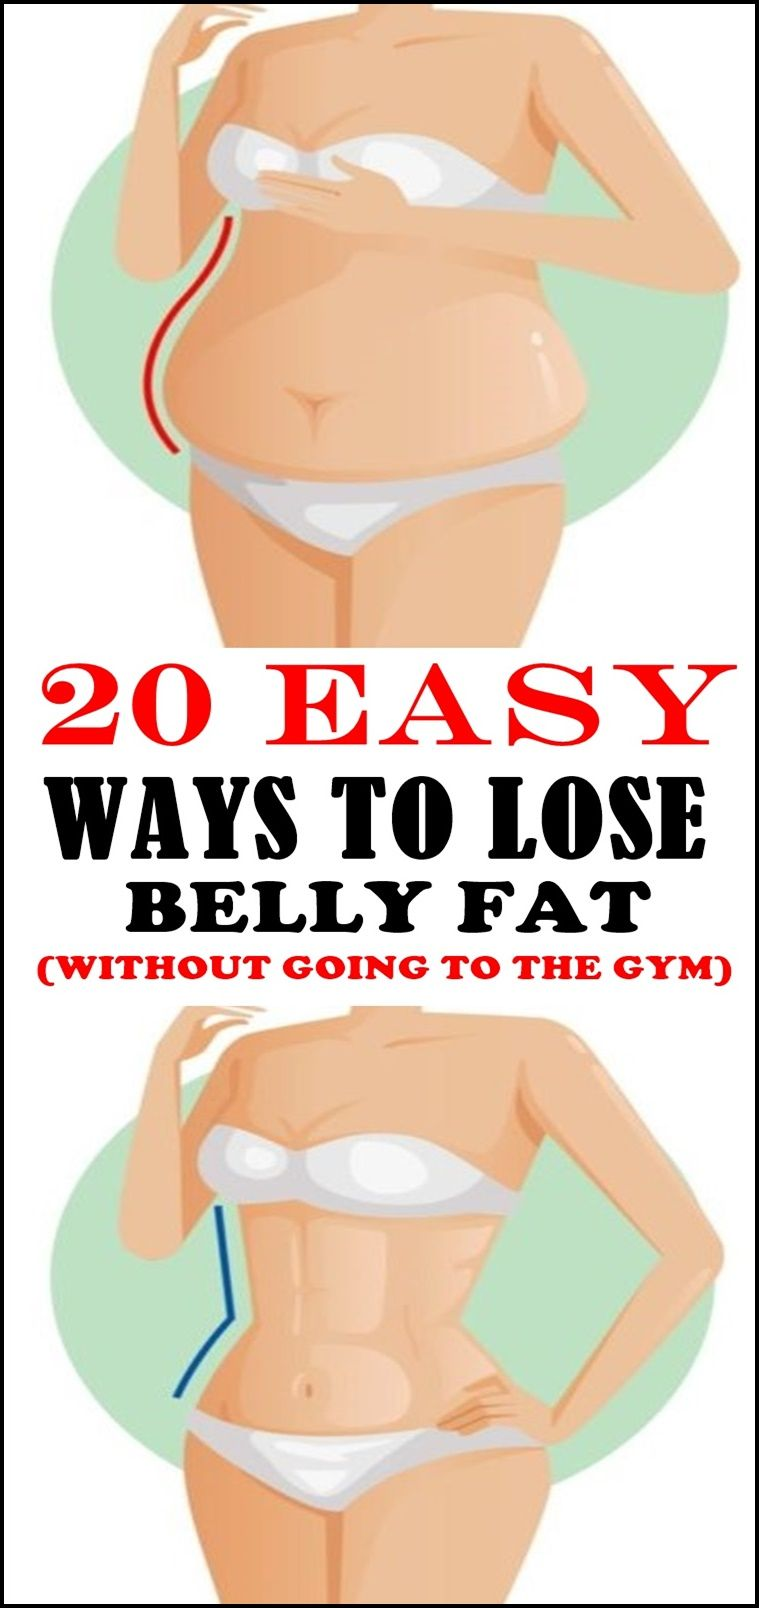 20 Easy Ways To Lose Belly Fat Without Going To The Gym Diet And